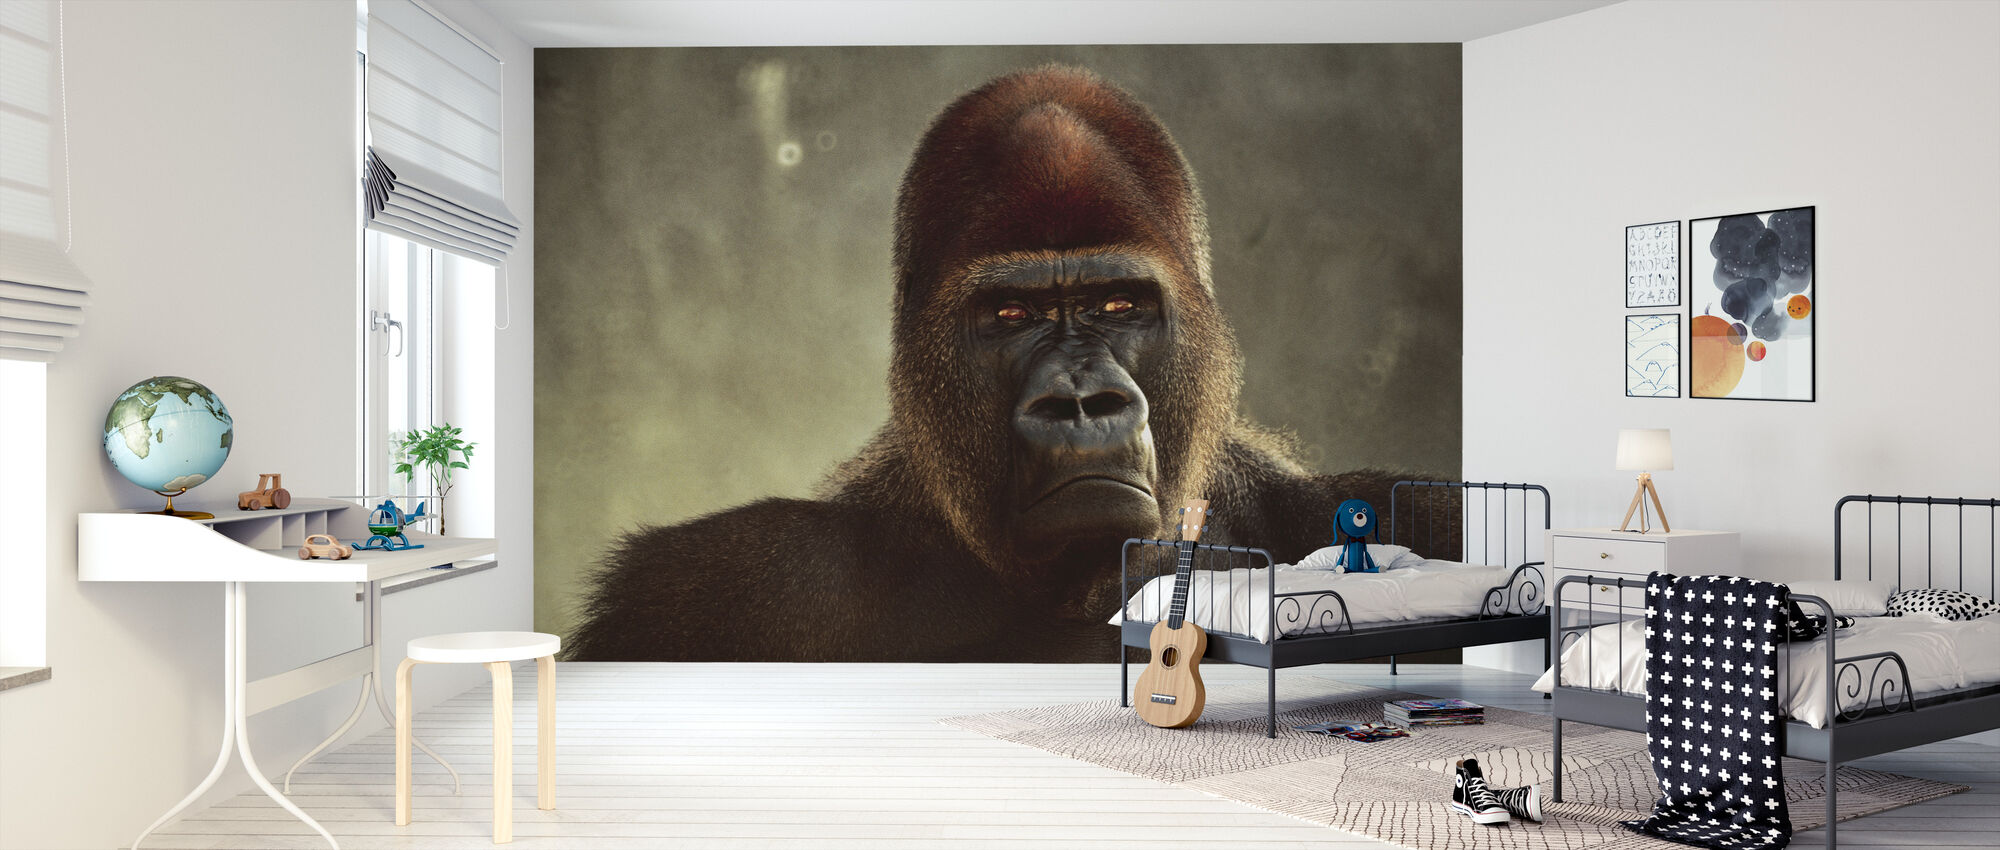 Machtige Gorilla - Behang - Kinderkamer